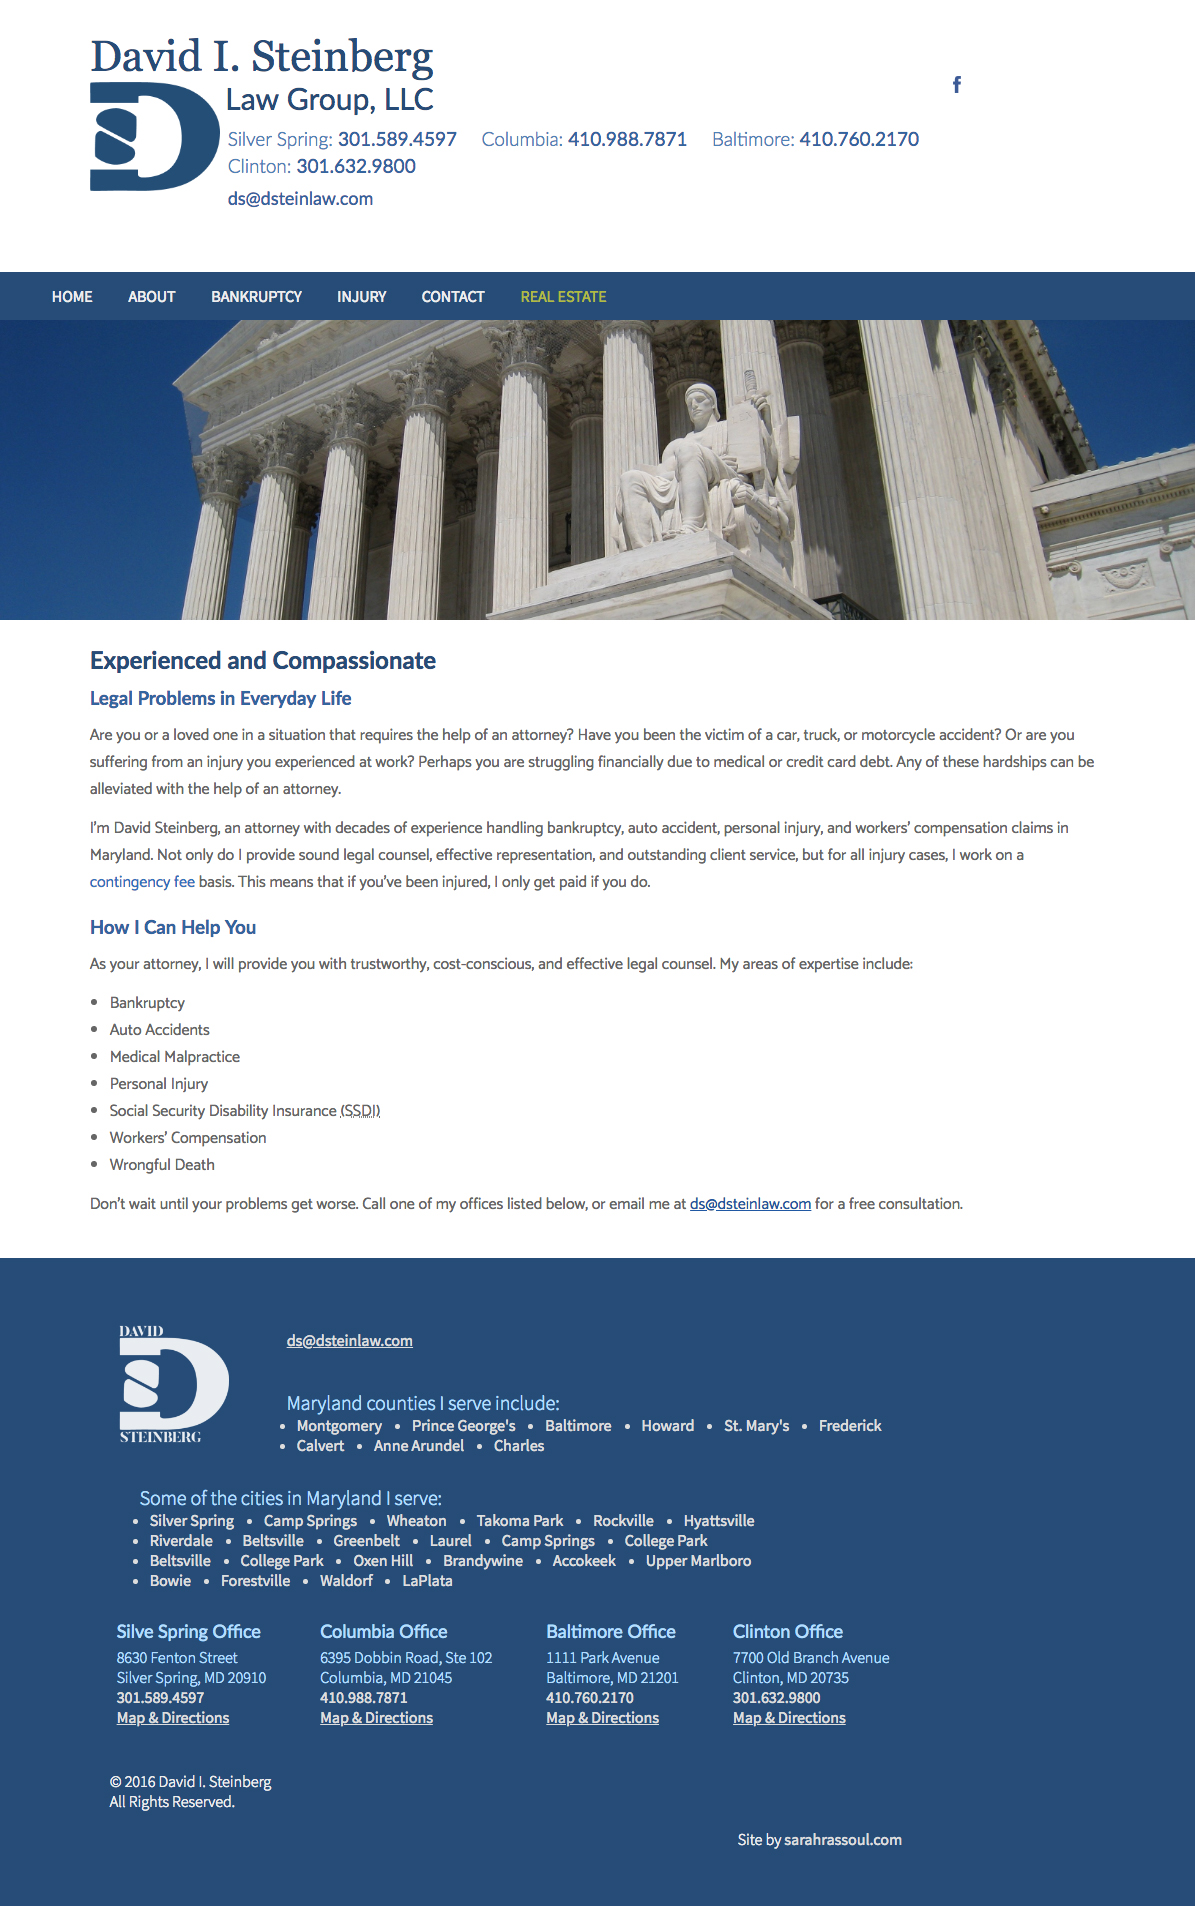 View of law website.